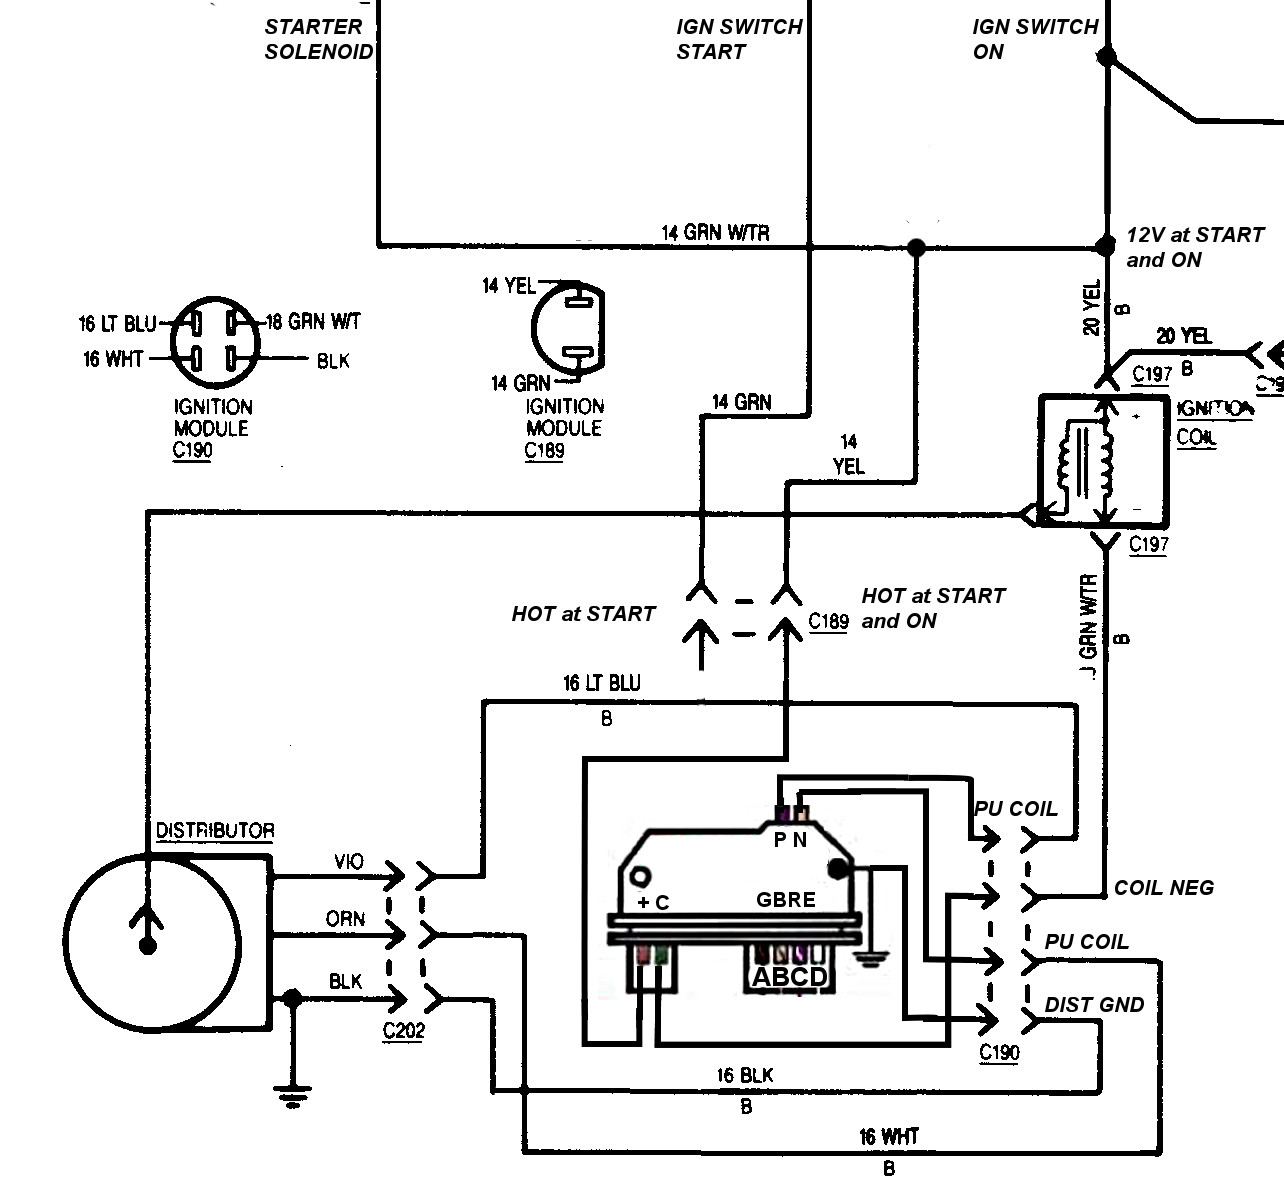 Turbo 350 Wiring Diagram - Mercury Thermostat Wiring -  gsxr750.periihh.jeanjaures37.fr | Turbo 350 Wiring Diagram |  | Wiring Diagram Resource